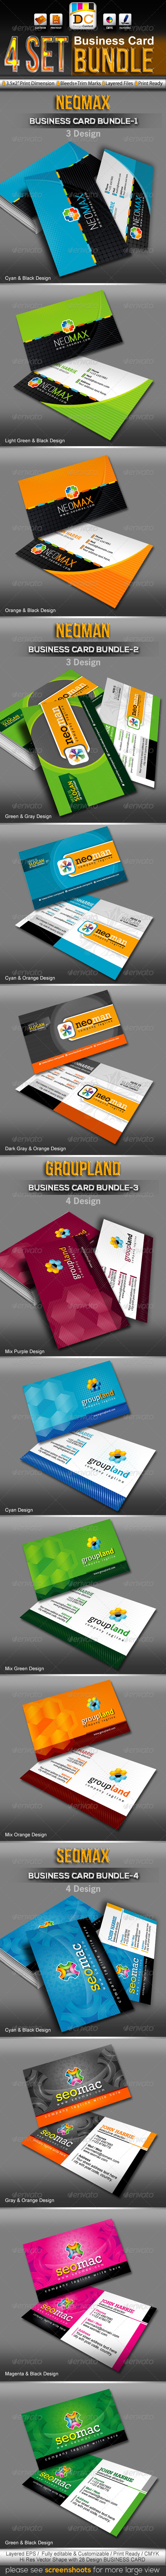 Corporate Business Card Mega Bundle Pack - Corporate Business Cards